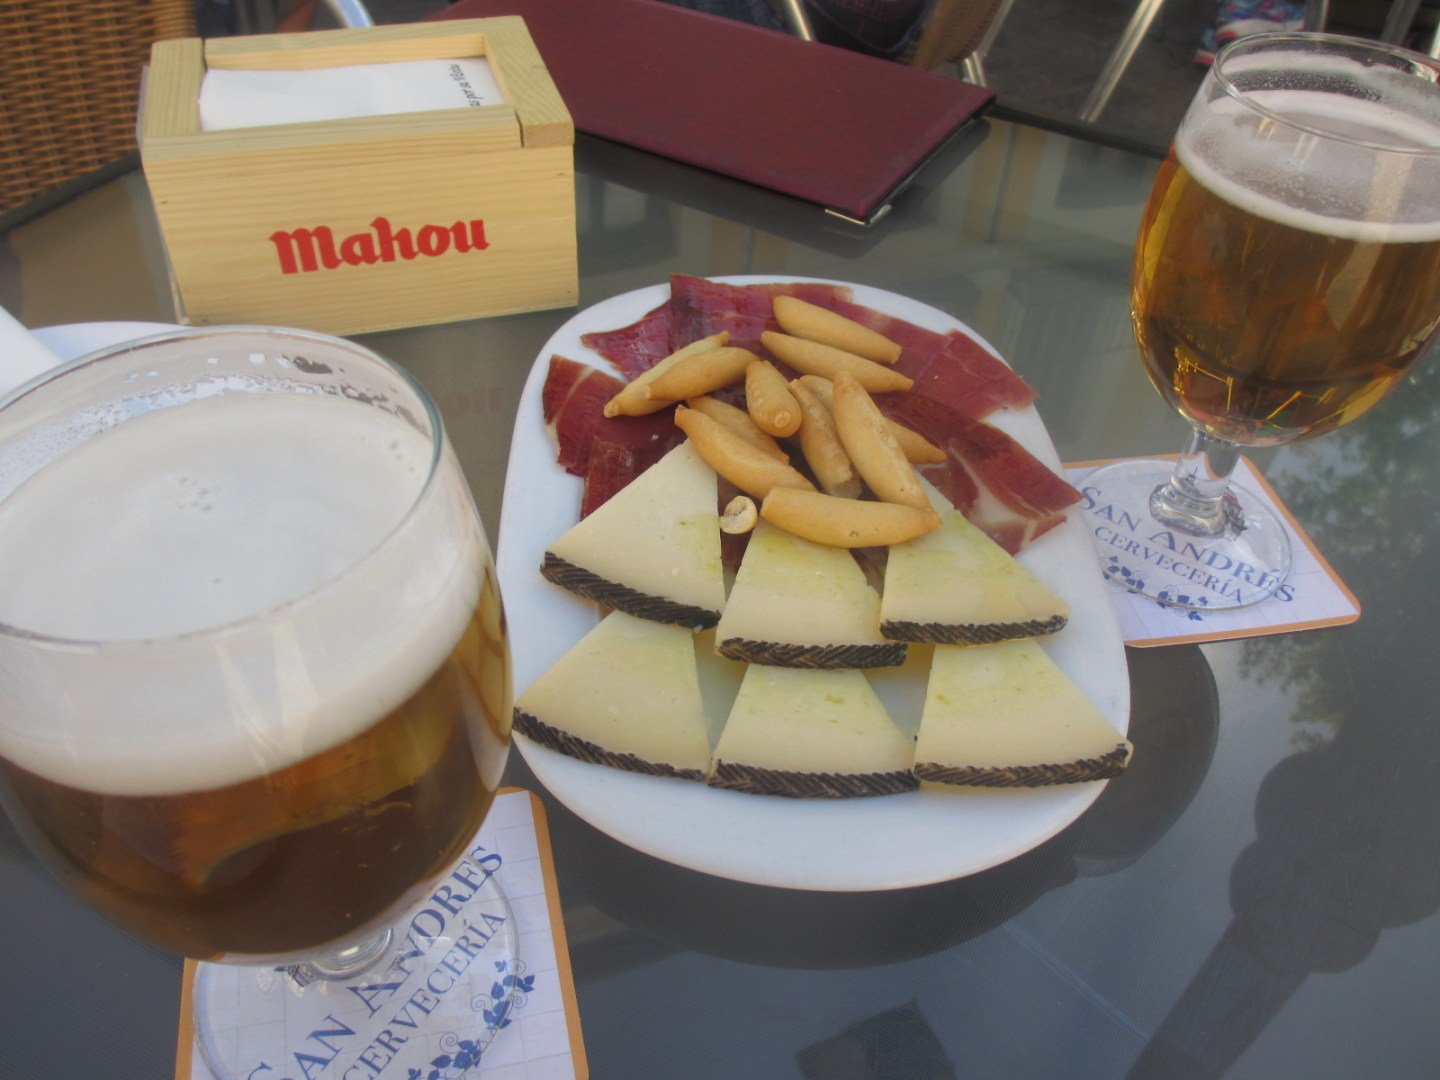 MADRID need to know - food & drink